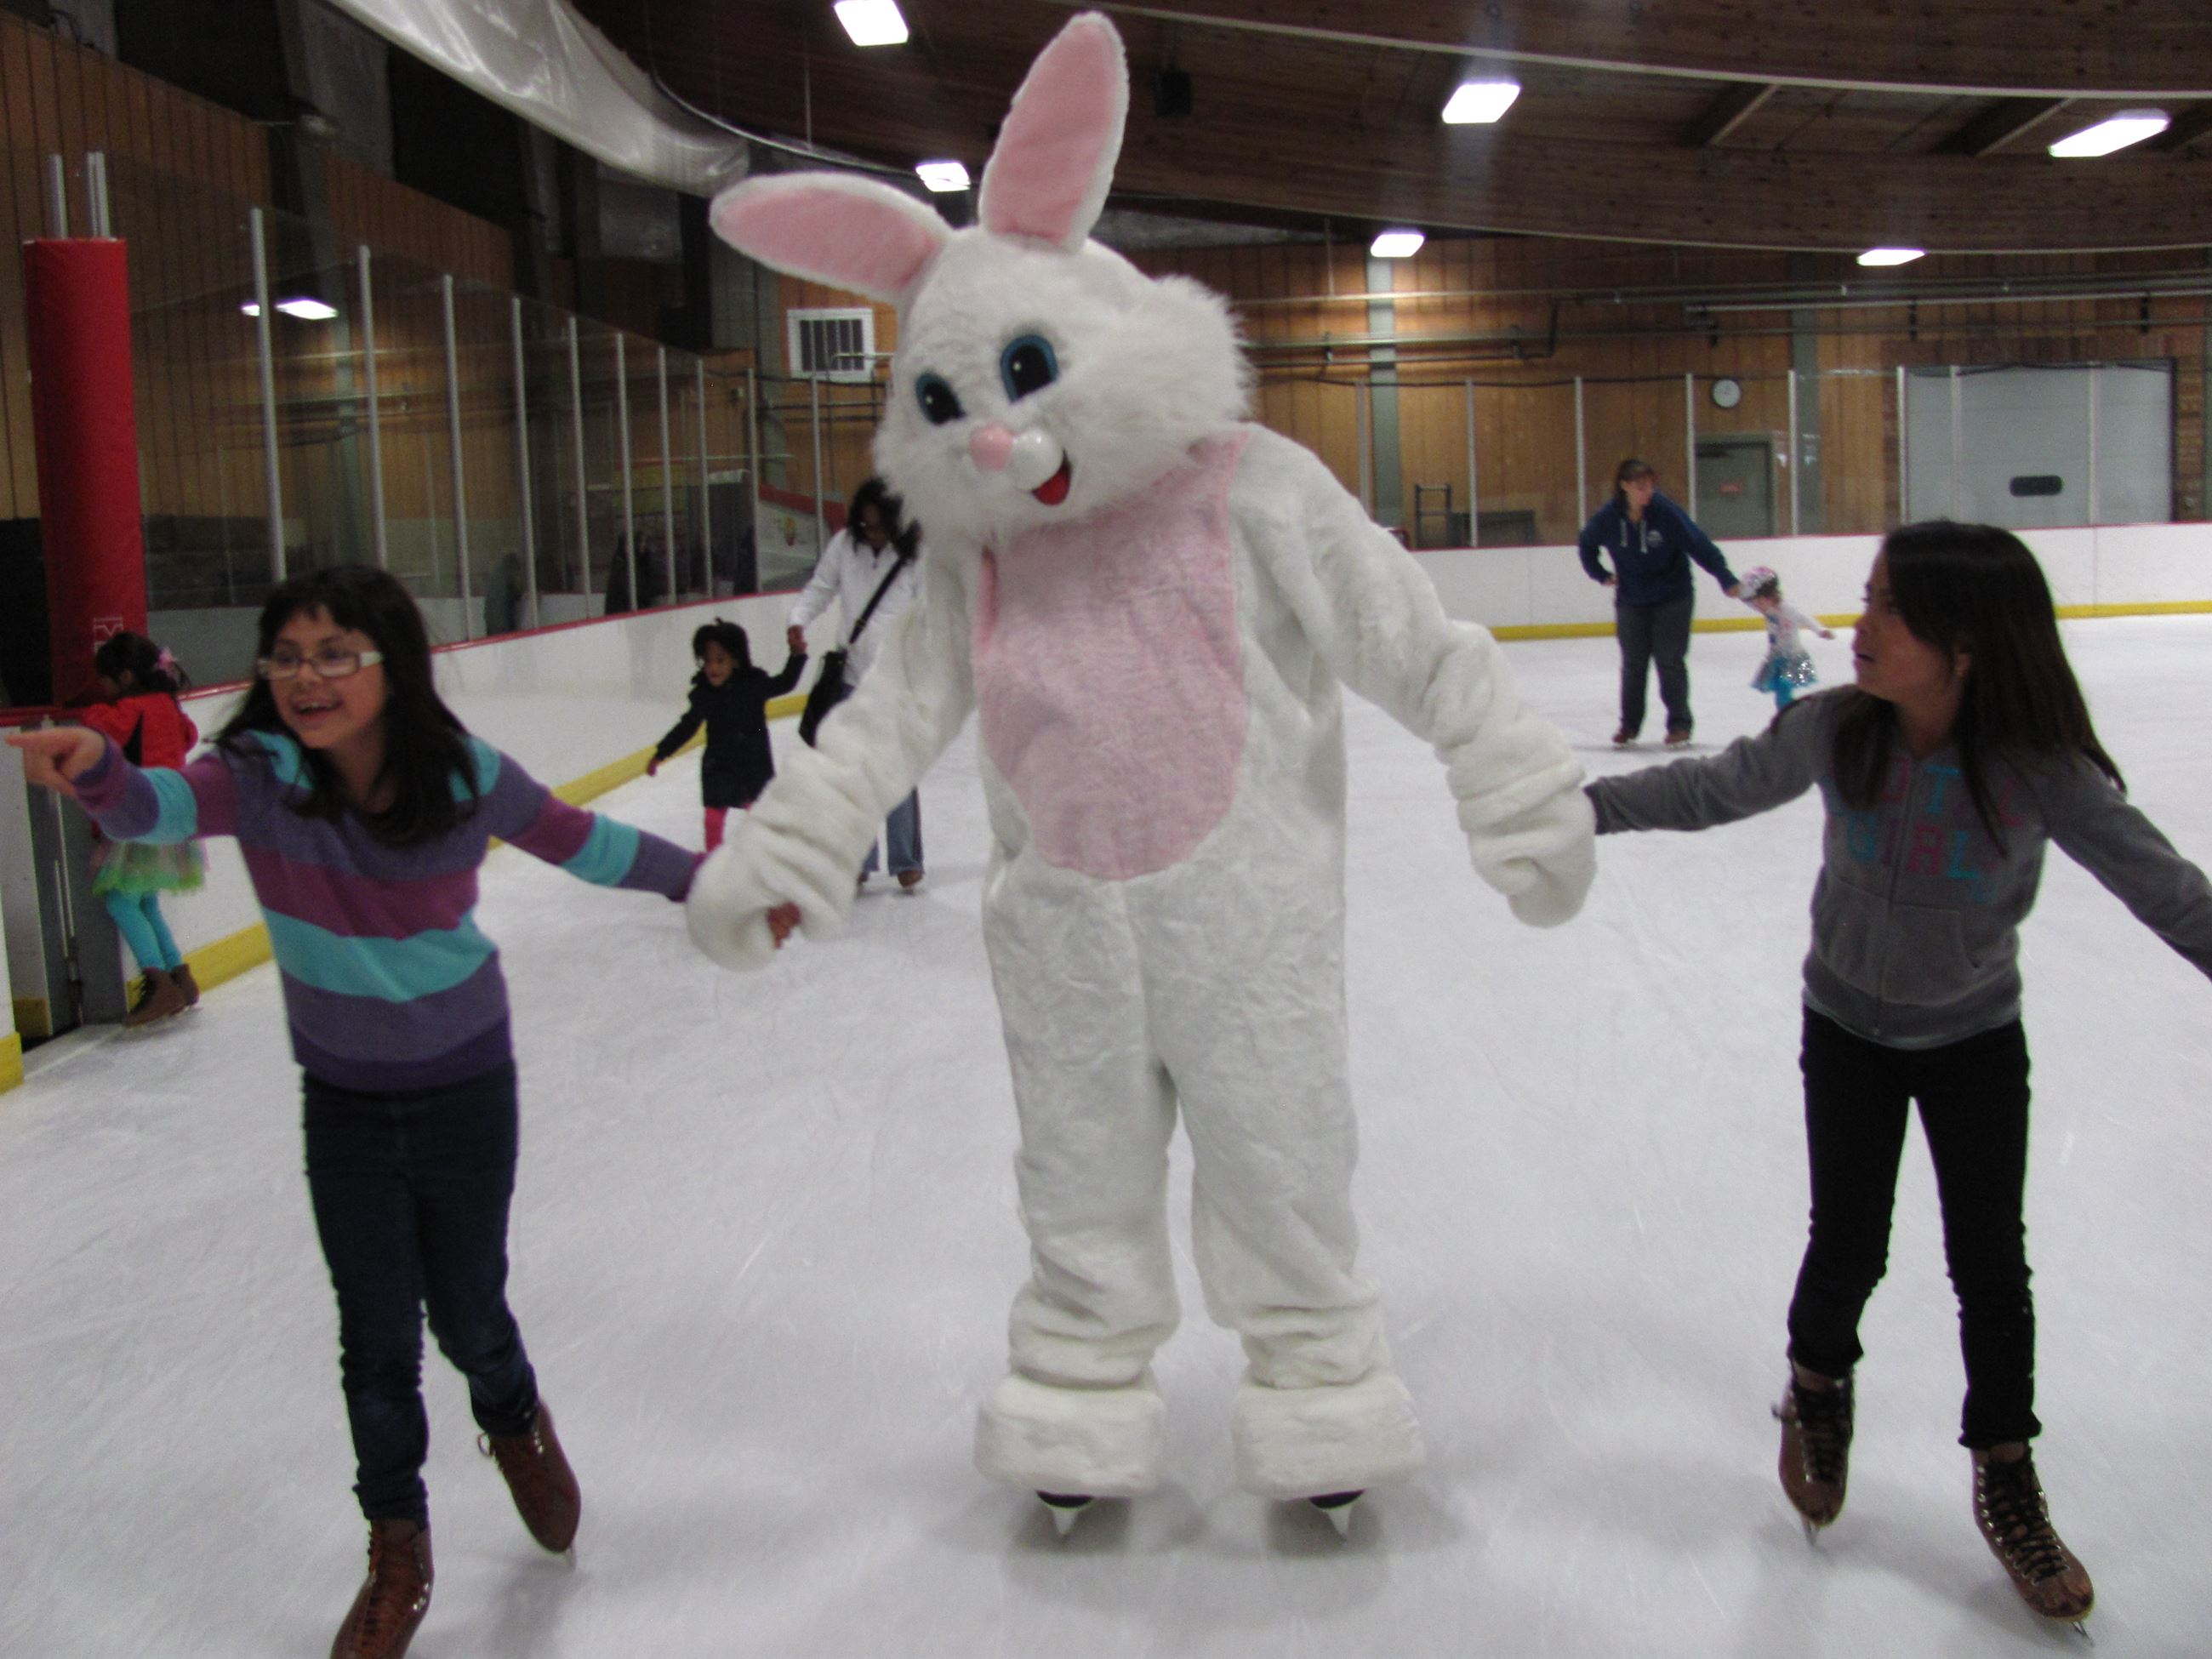 Image of Skating with the Easter Bunny